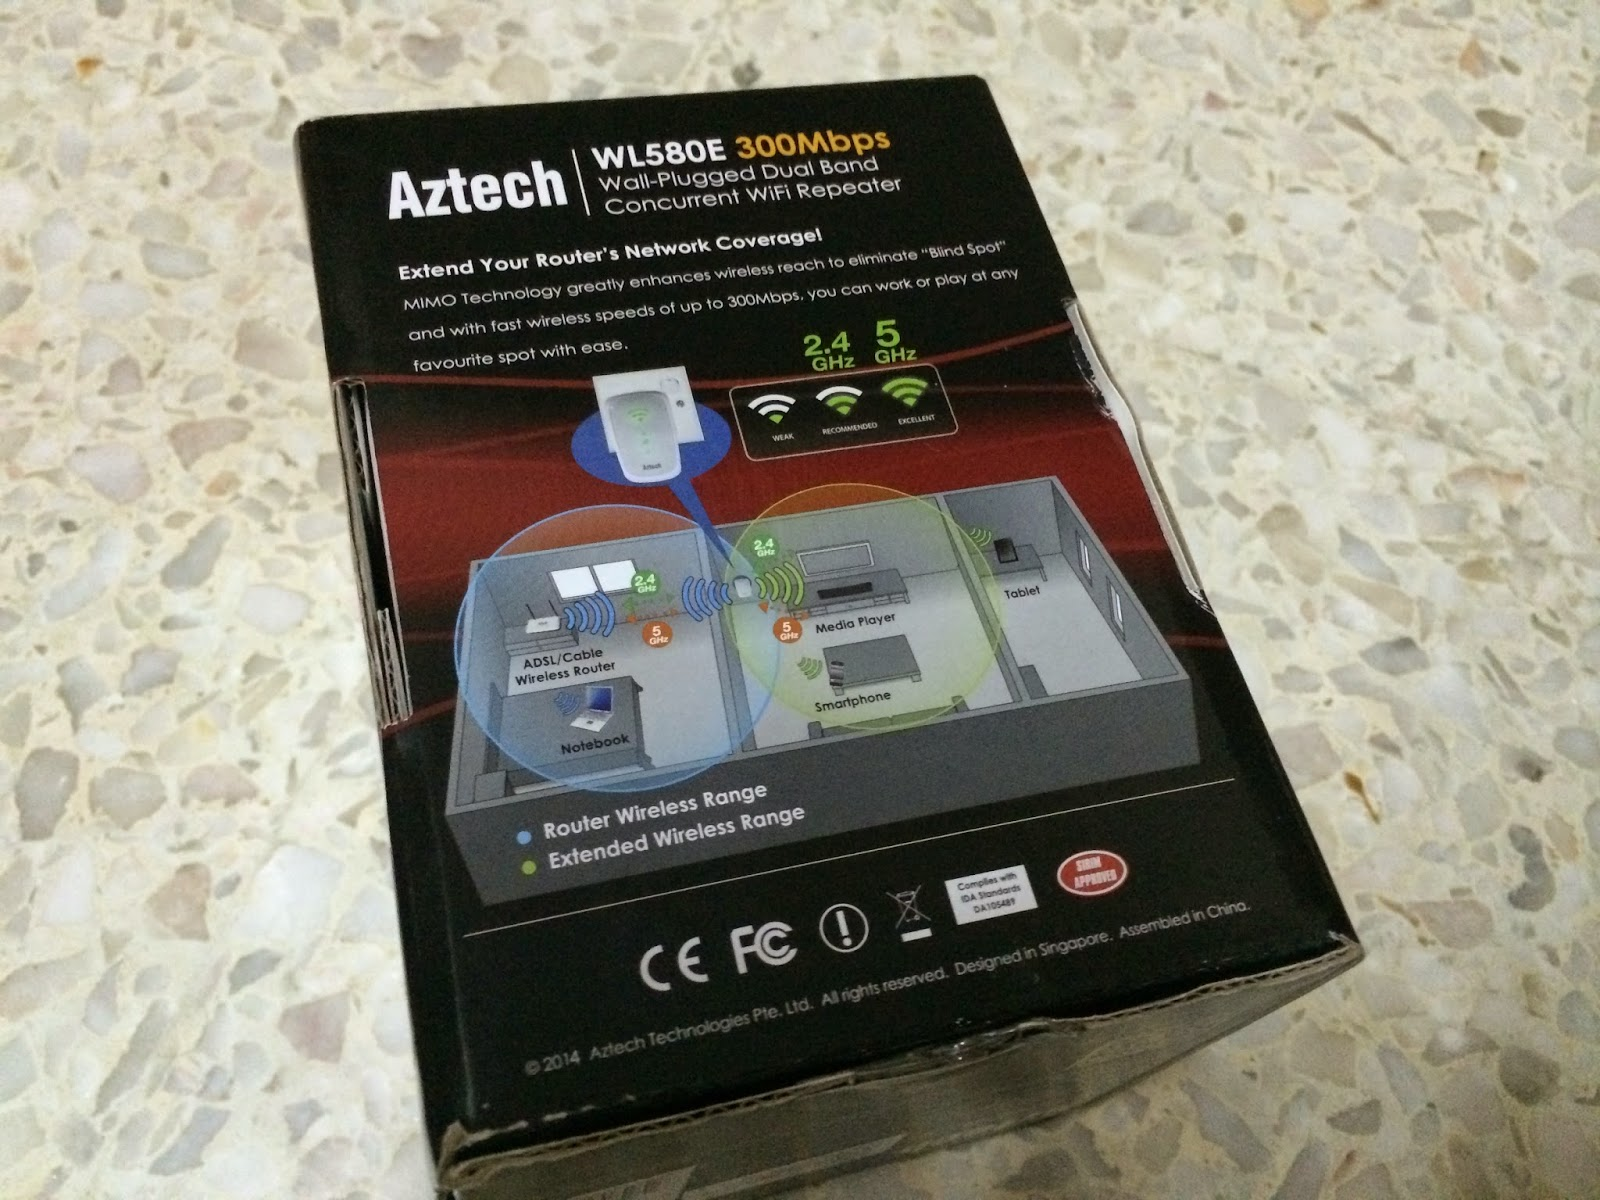 Unboxing & Review: Aztech WL580E Repeater 4